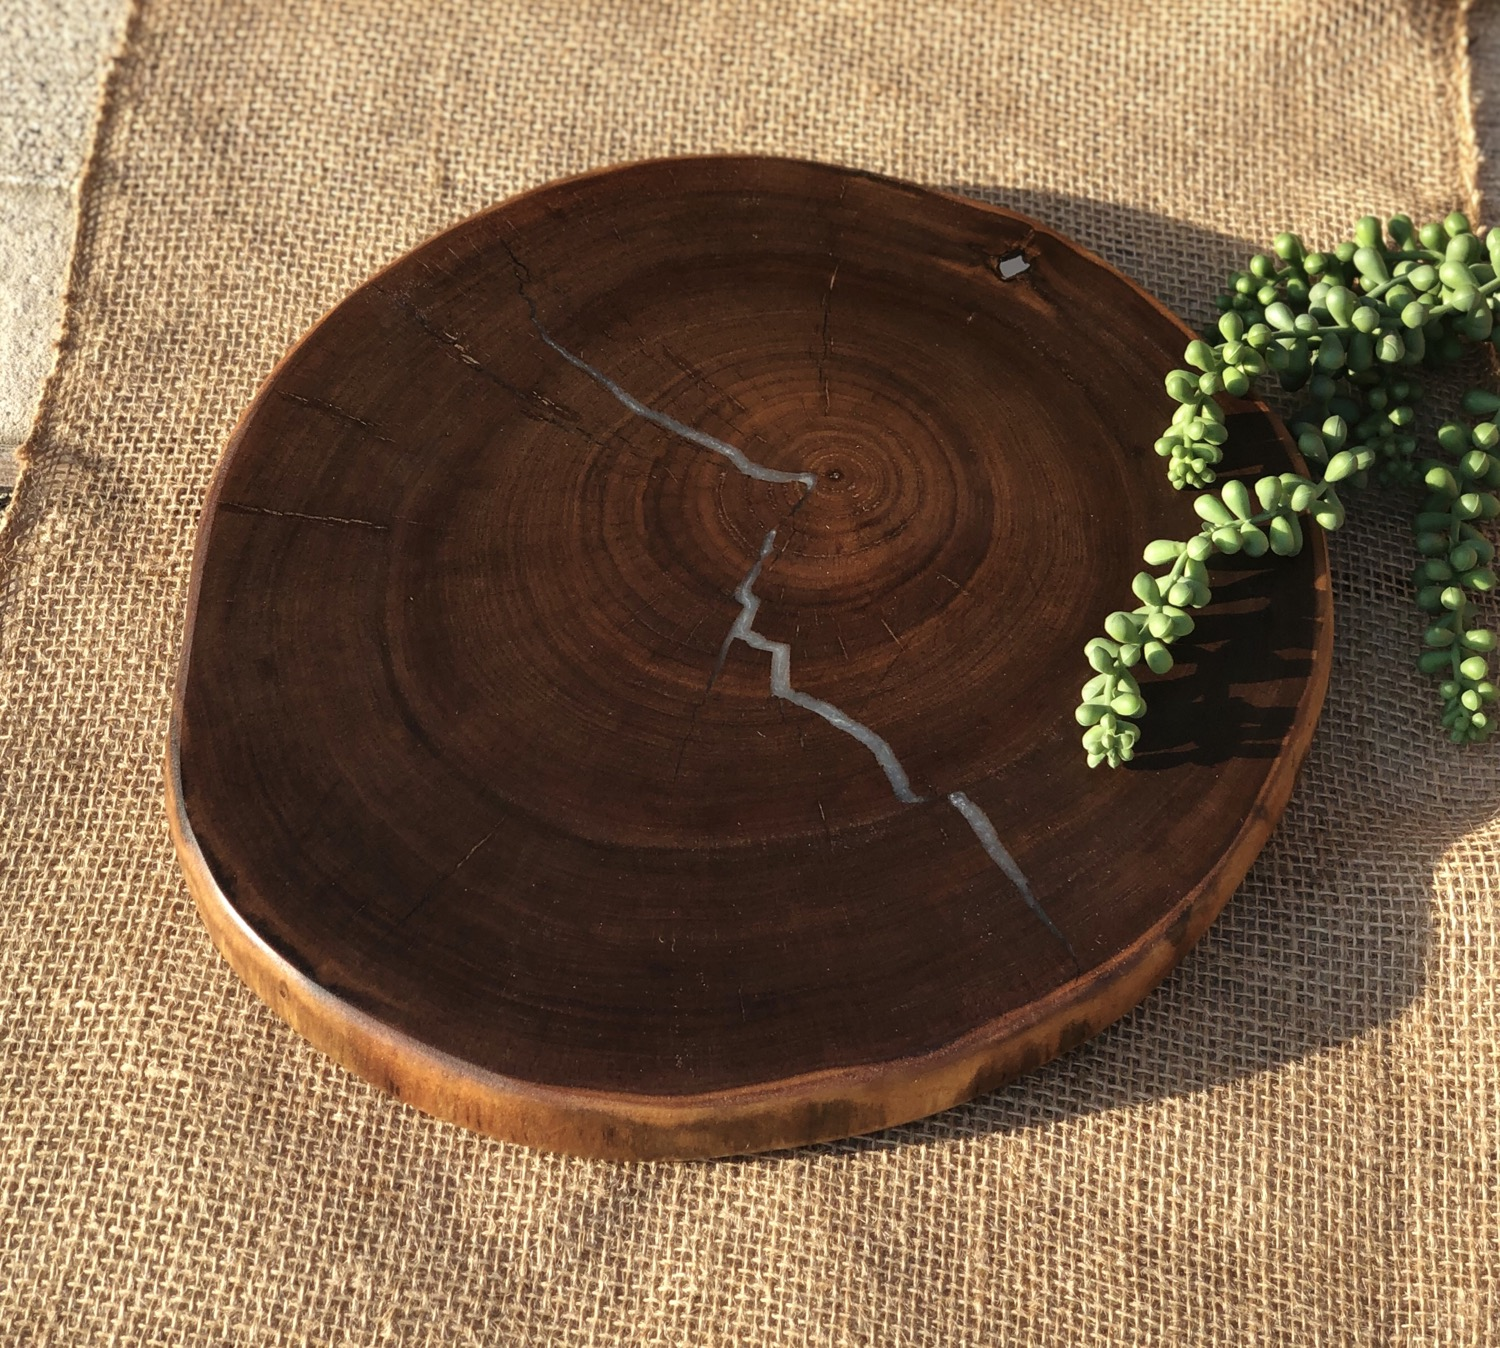 Walnut and epoxy stump - for entertaining